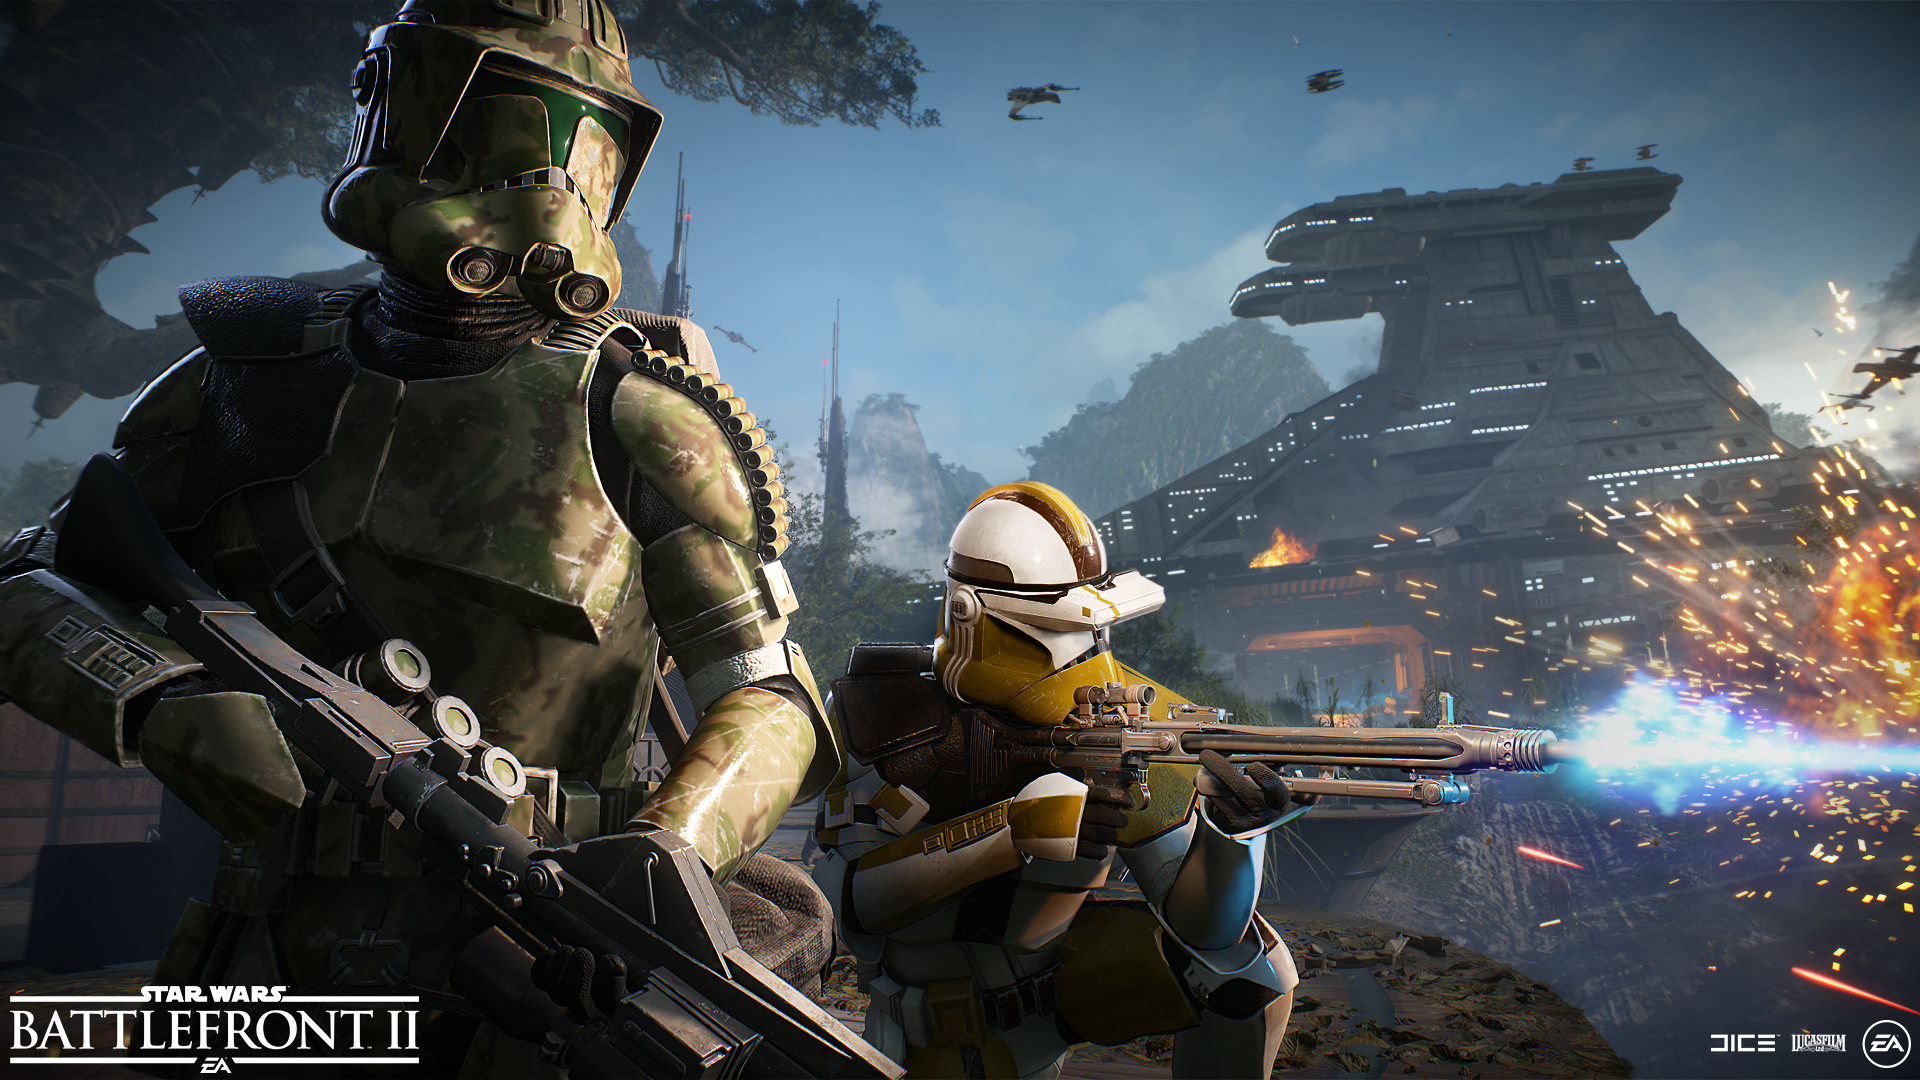 Star Wars Battlefront 2' Update 1 18 Adds Elite Corps Skins - Patch